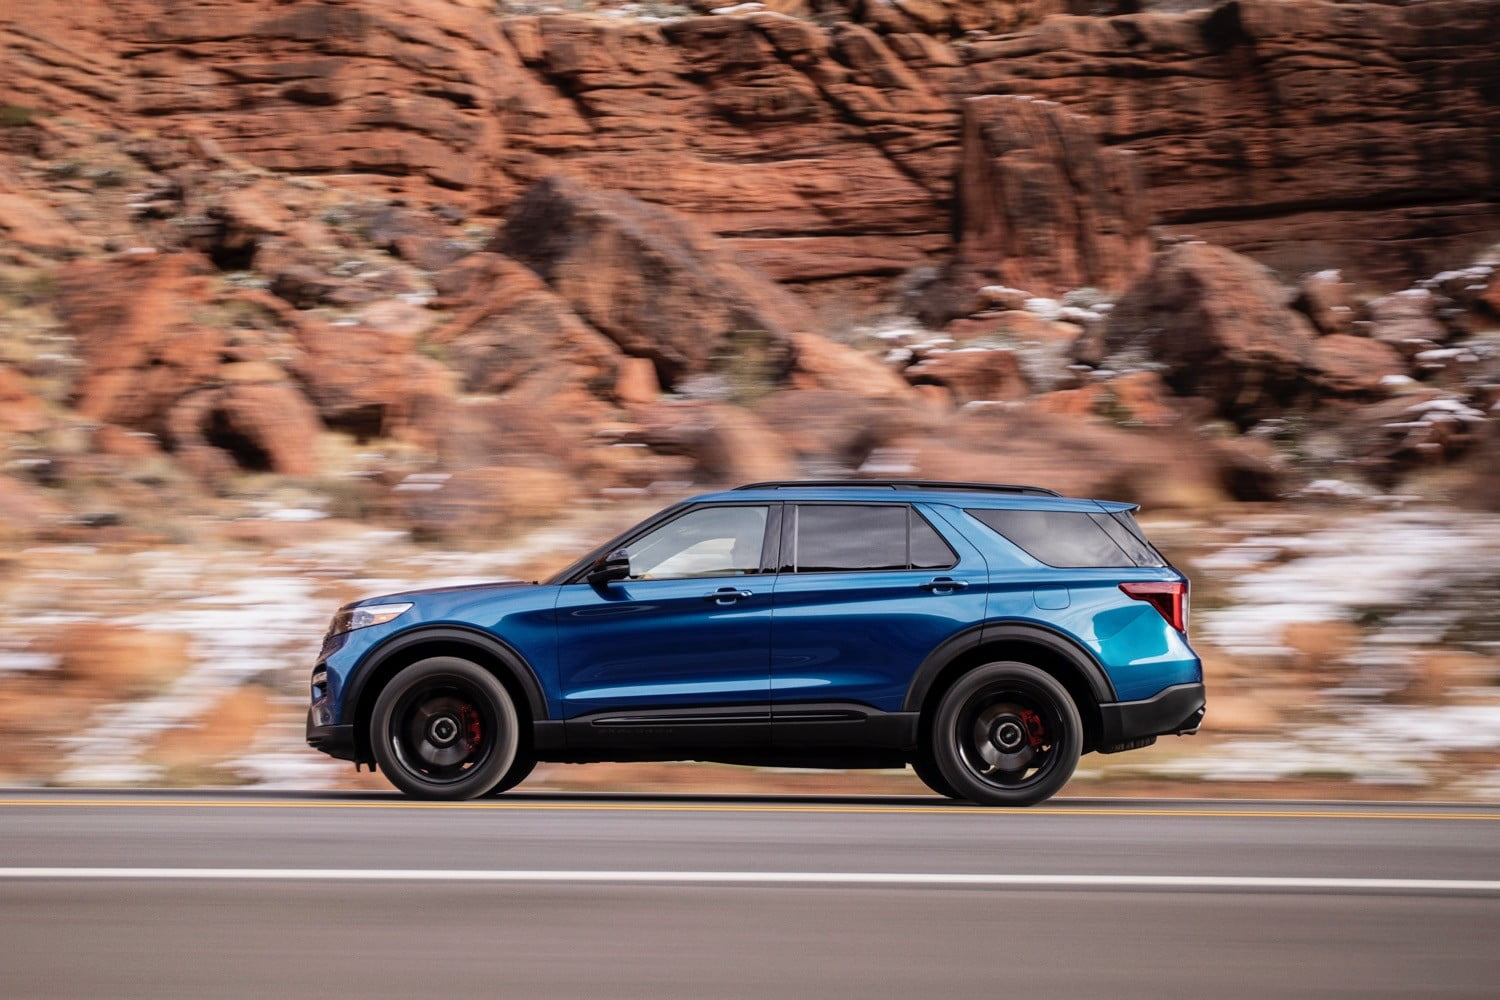 2020 Ford Edge Price, Hybrid, Third Row >> The Engineering Easter Eggs In The New 2020 Ford Explorer Digital